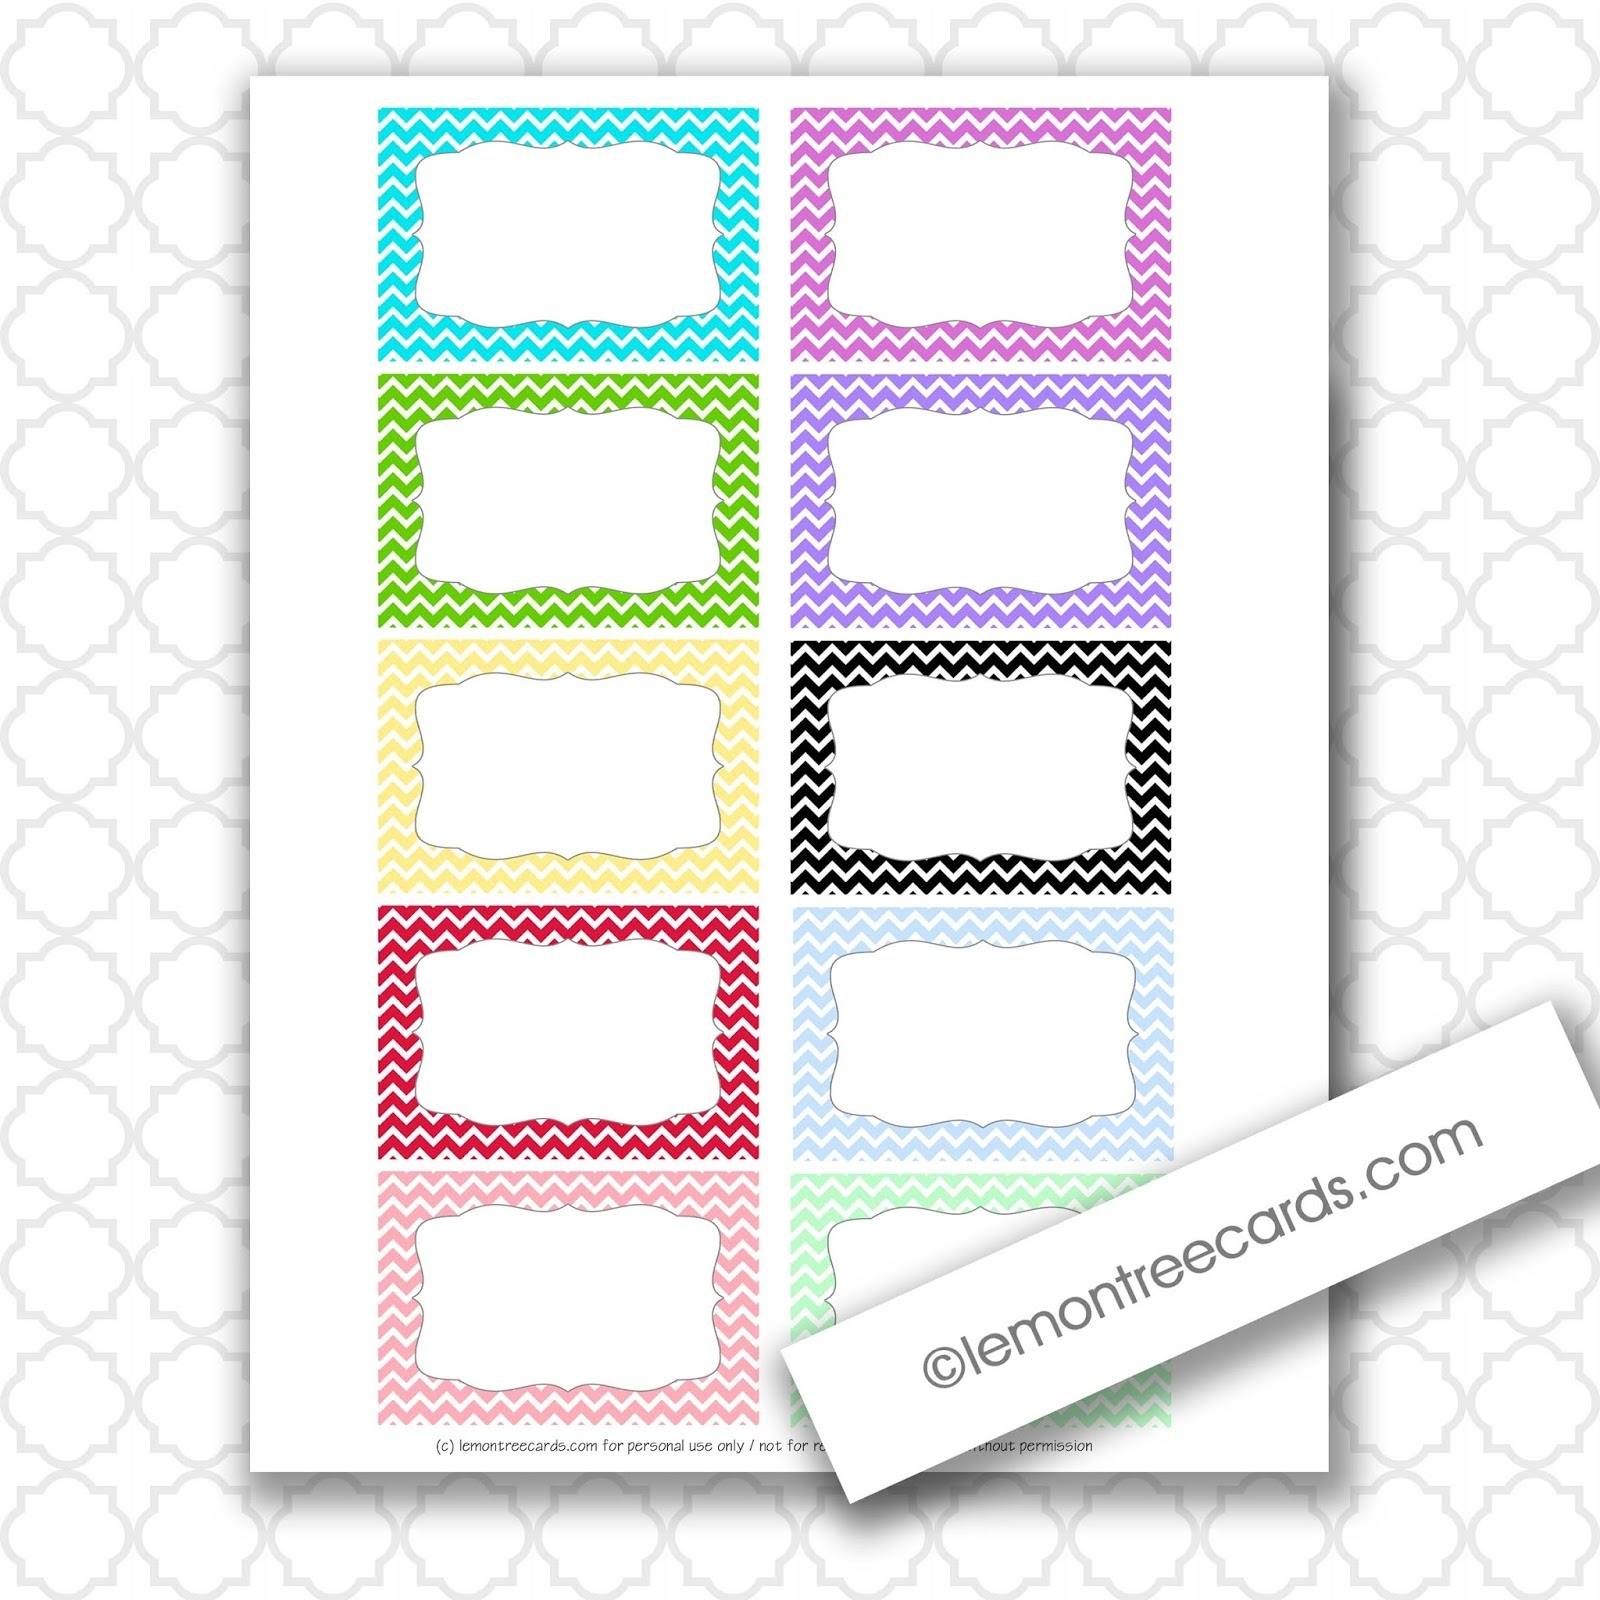 27 Images Of Index Cards Printable Editable Template Contest Entry - Free Printable Blank Index Cards